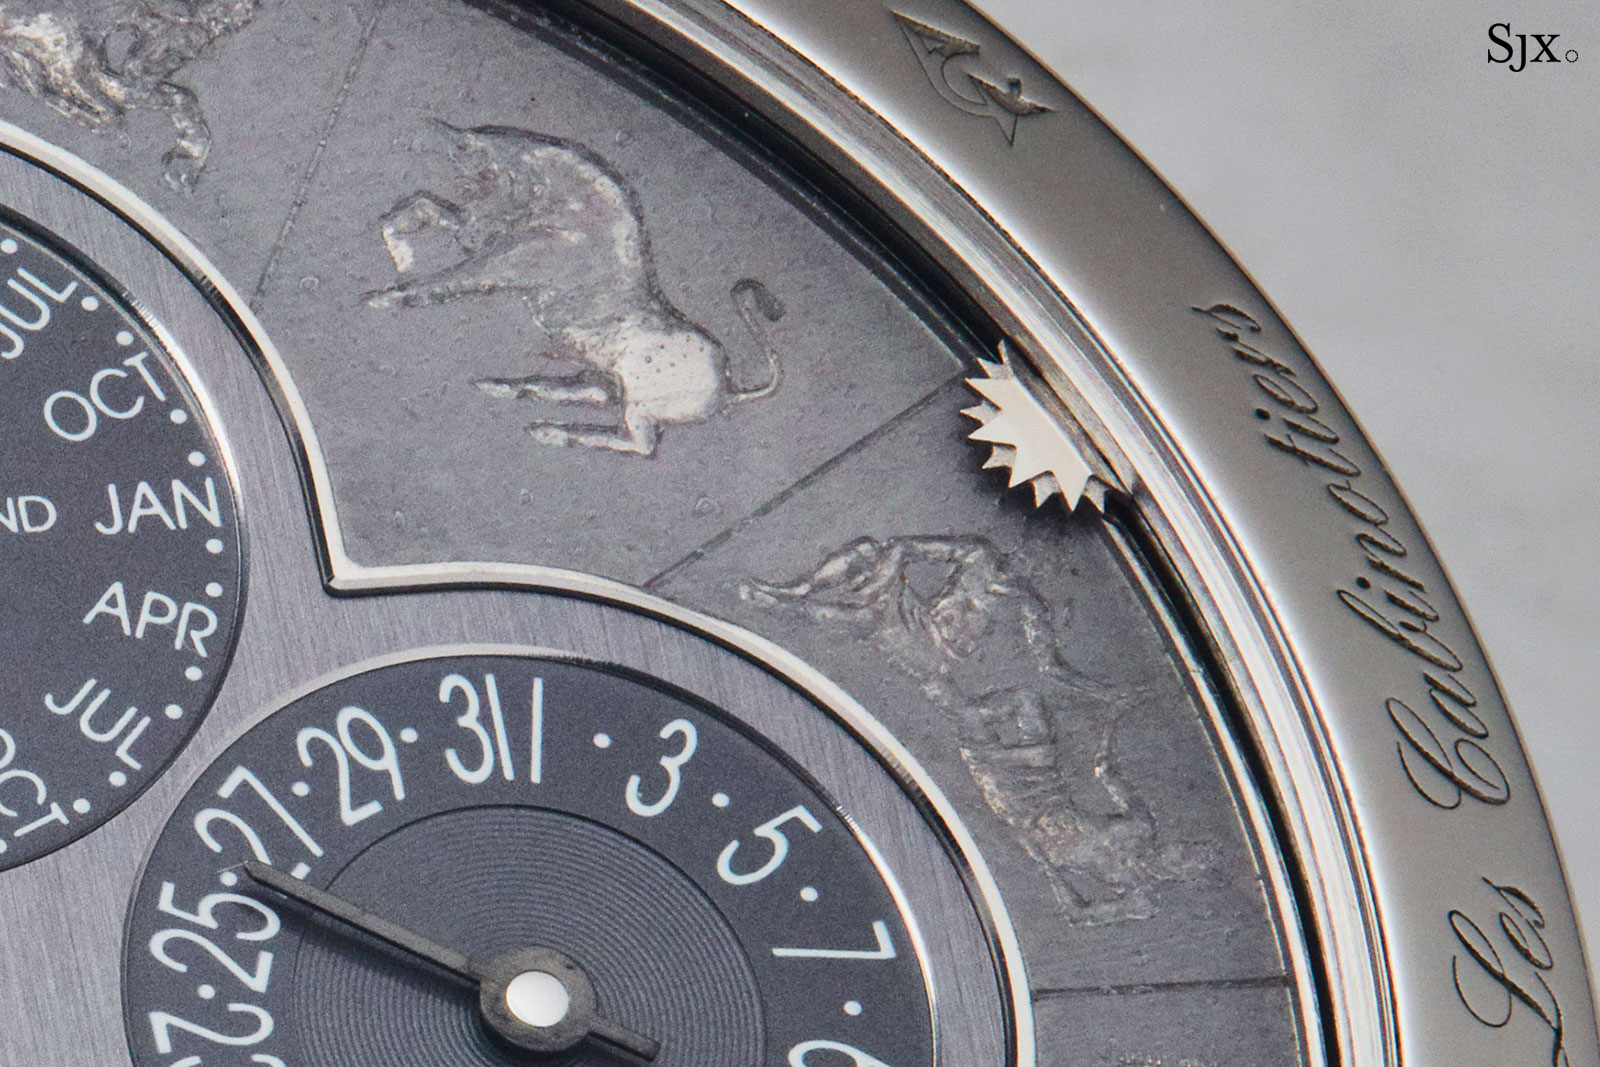 Vacheron Constantin Cabinotiers grand complication 30016-000P 8